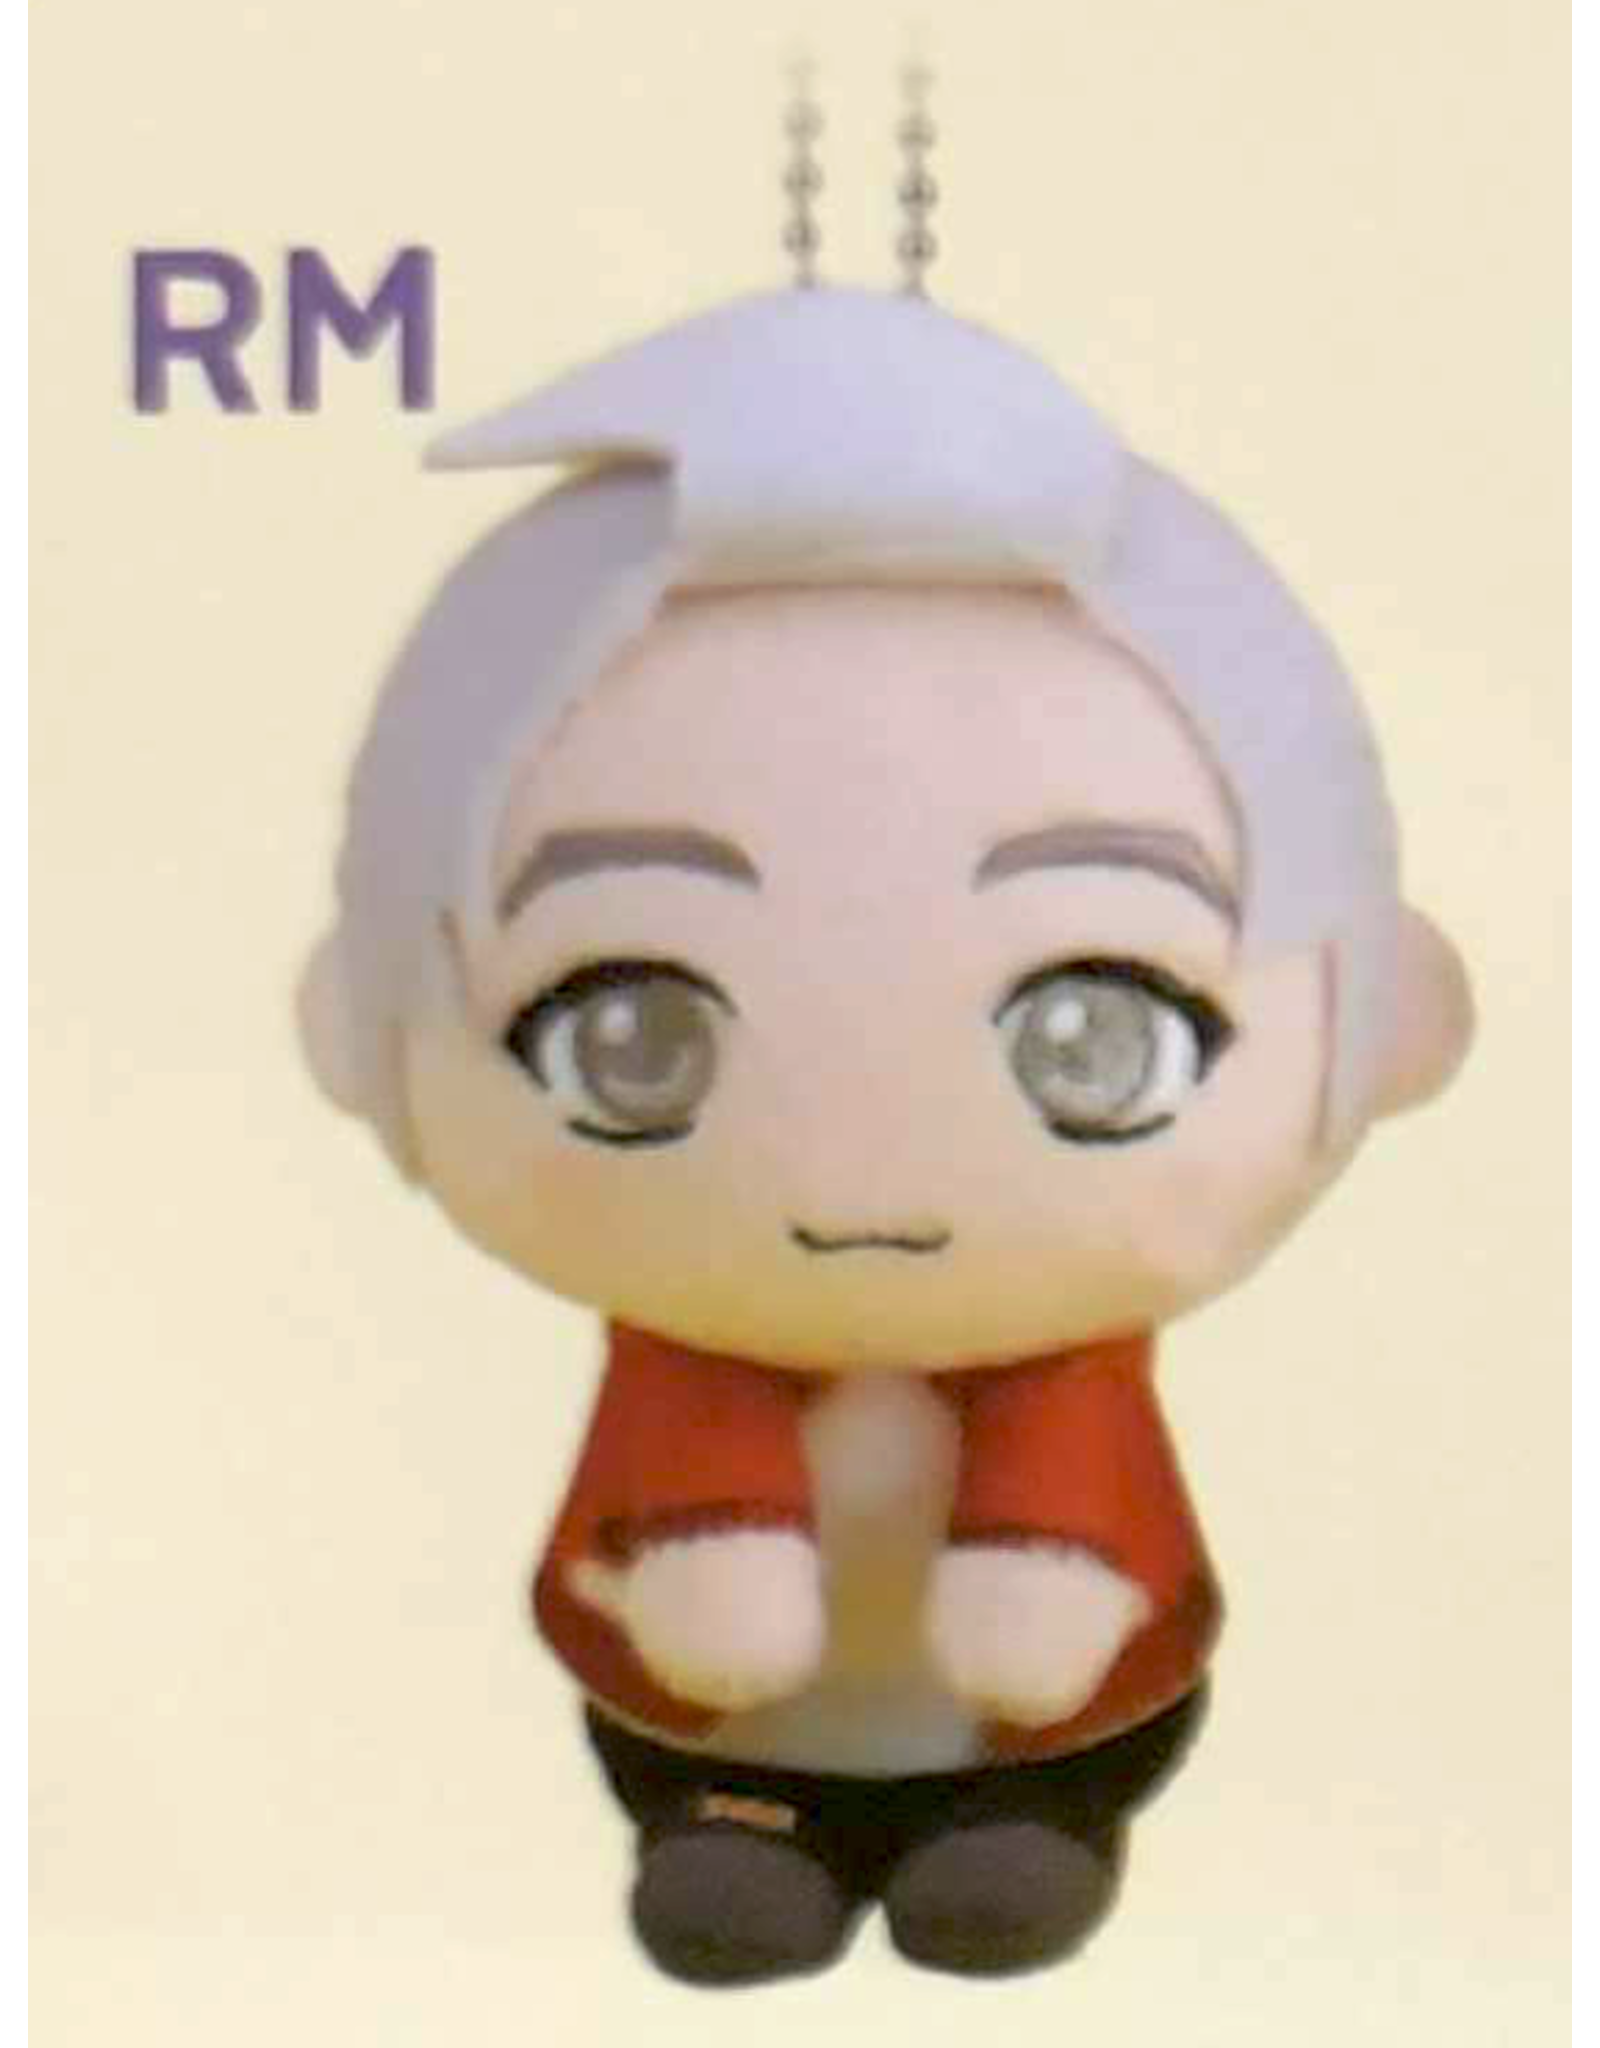 TinyTan & You - Extraction Mascot Keychain Plushie - 12 cm - RM